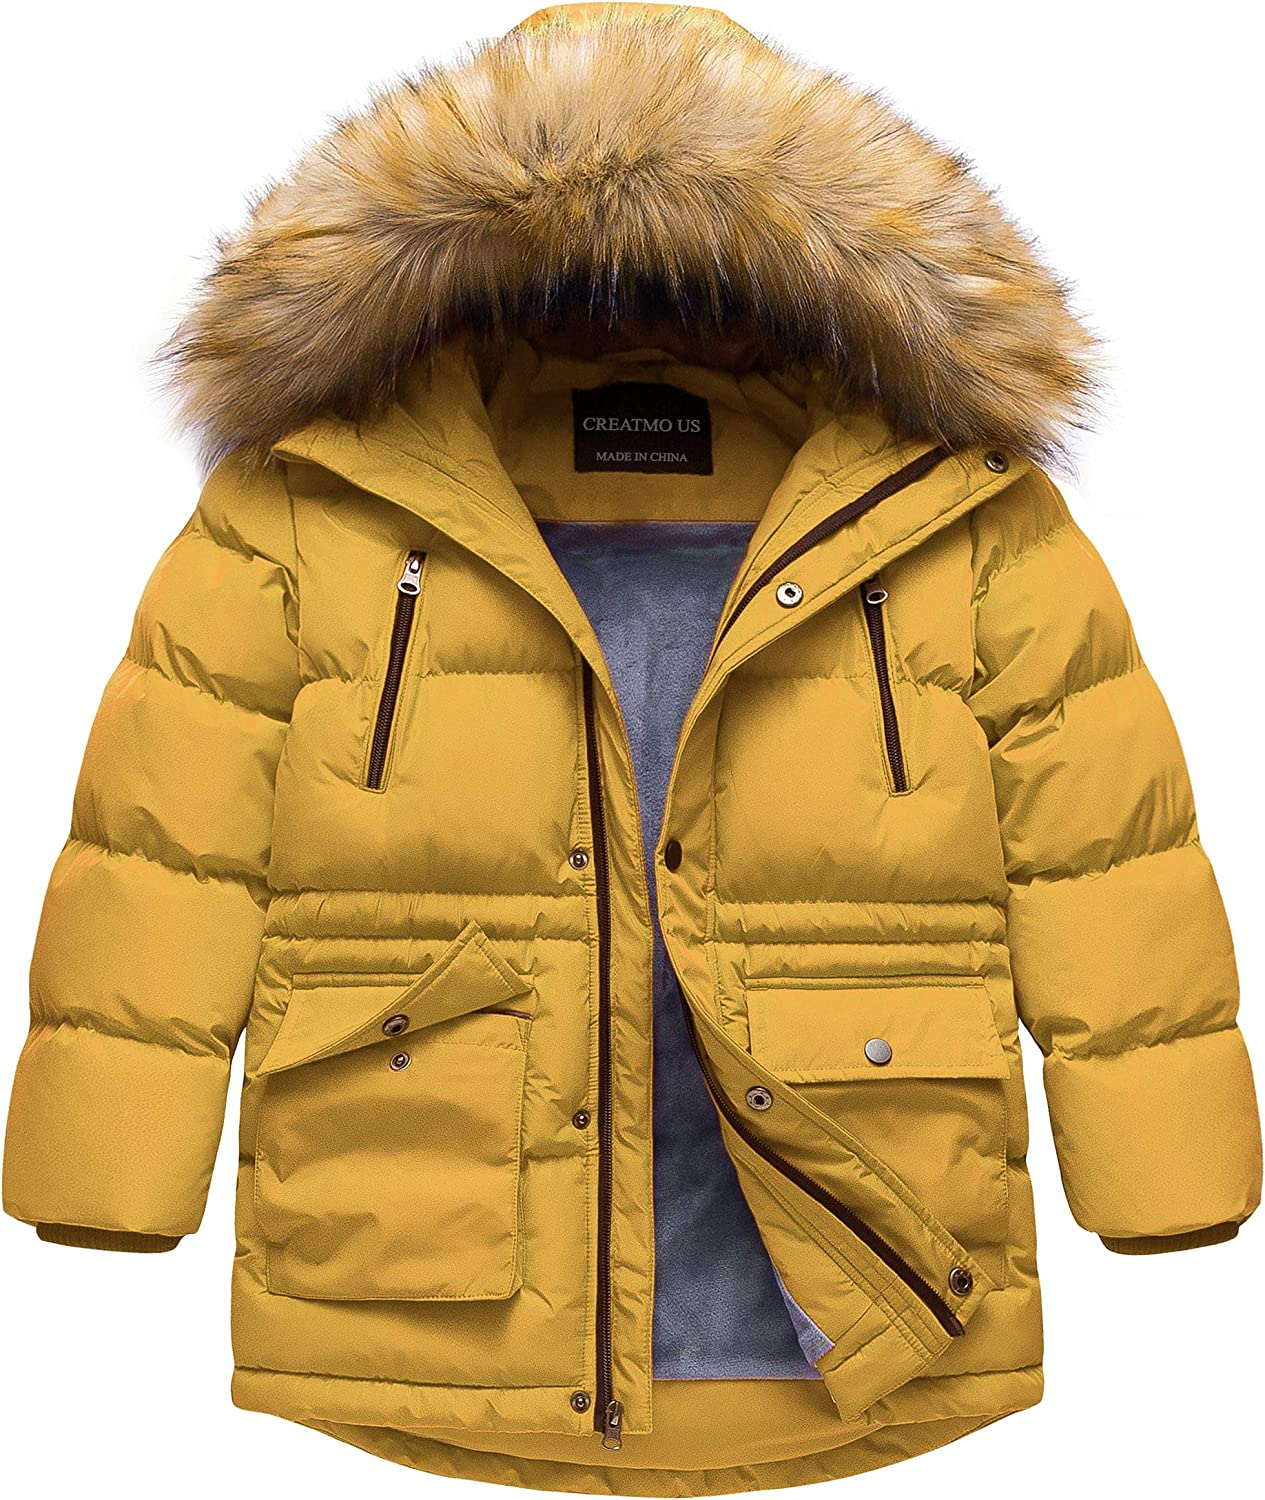 CREATMO US Boy's Winter Max 41% OFF Parka Resistant Flee Hooded Water Puffer Ranking TOP14